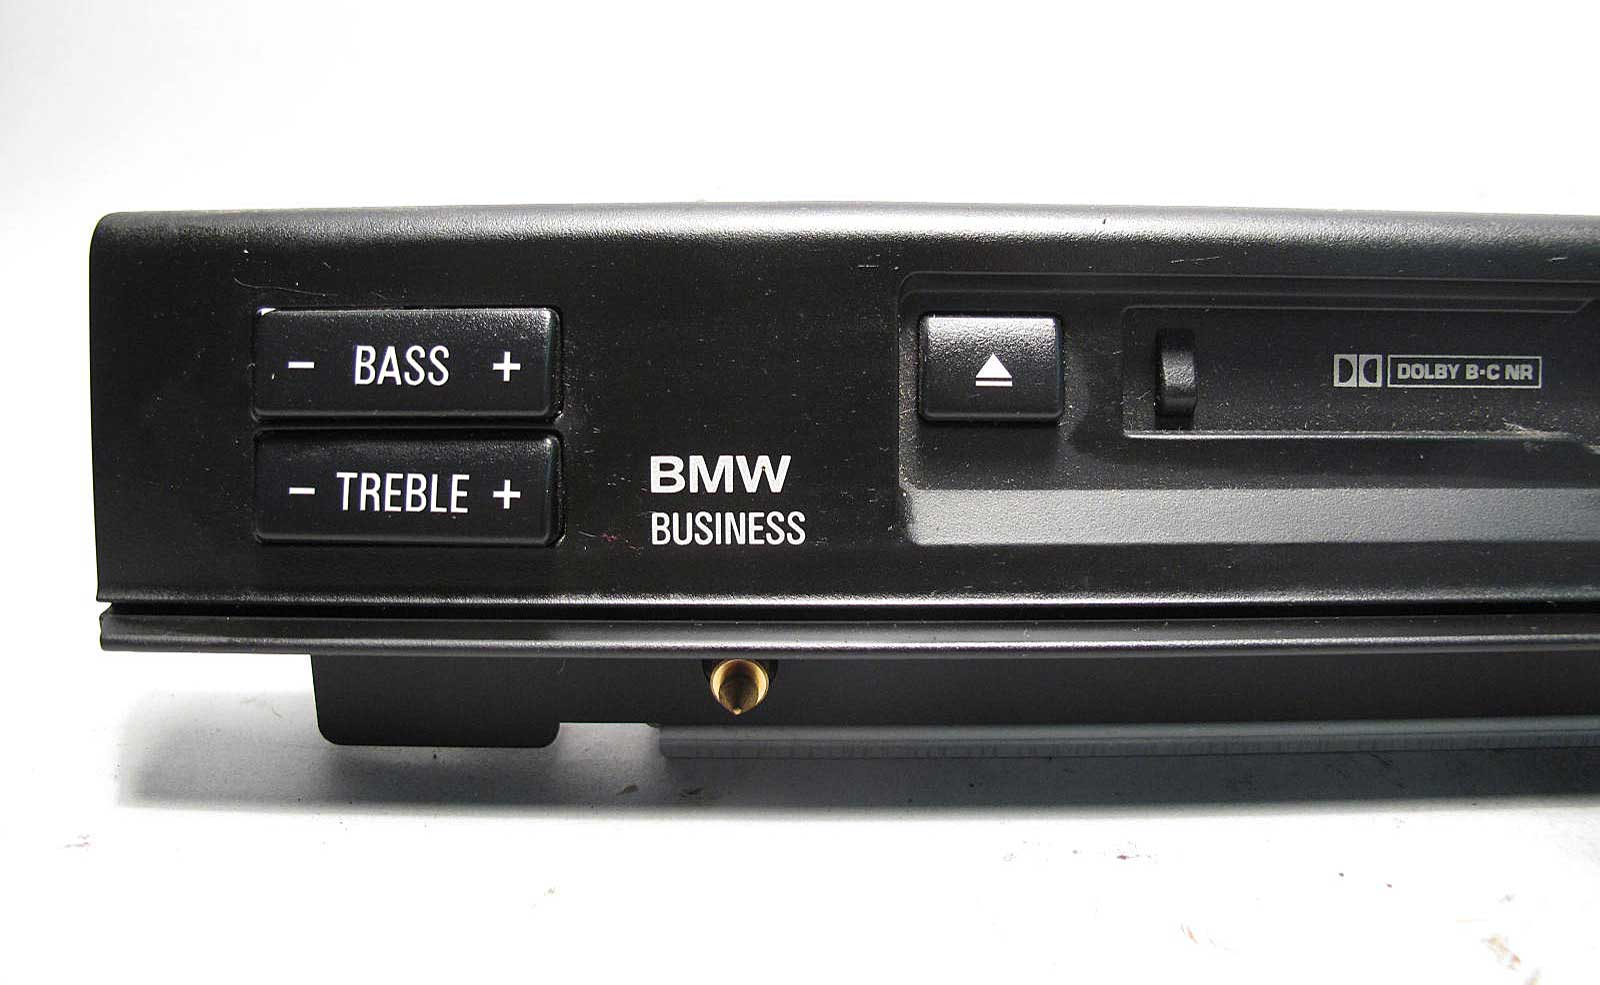 bmw e39 5 series x5 c43 factory business cassette radio. Black Bedroom Furniture Sets. Home Design Ideas